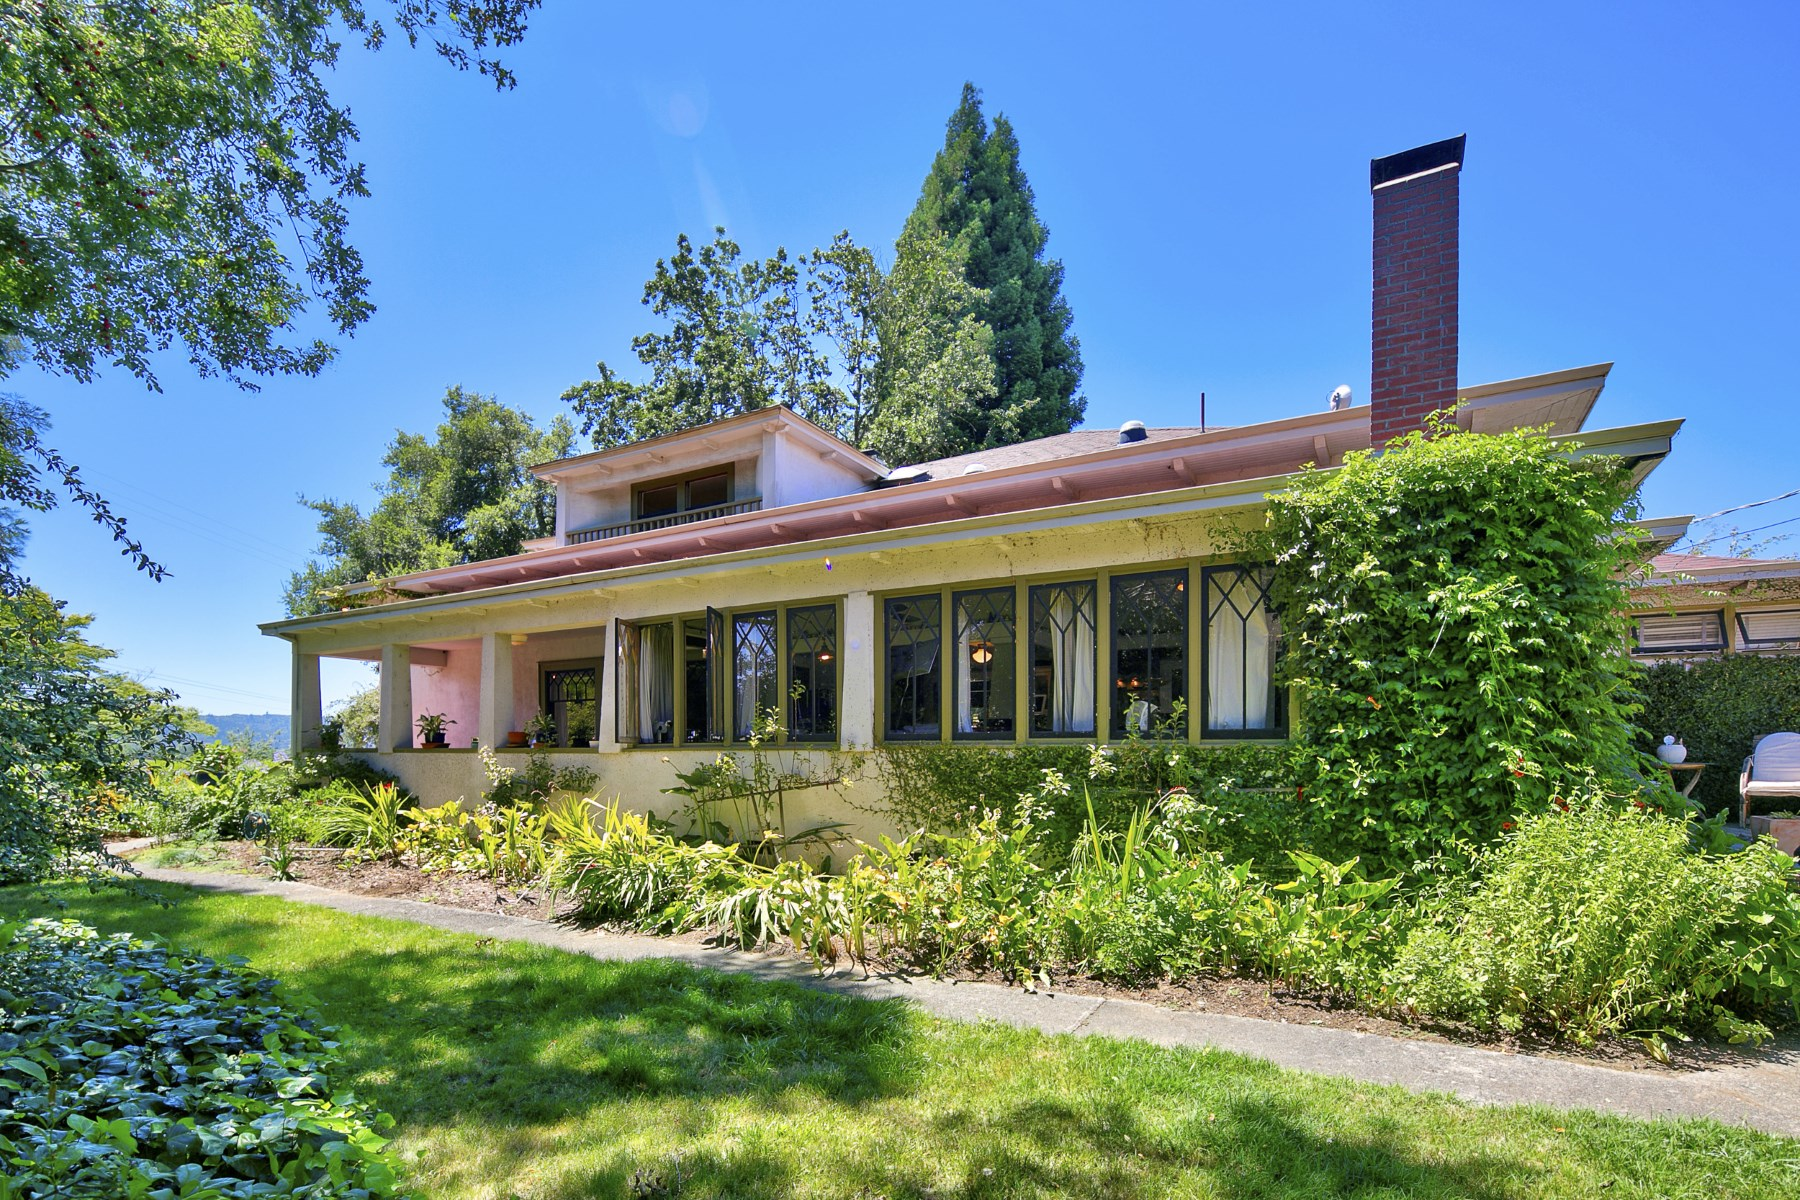 Single Family Home for Sale at A Historic Alexander Valley Home 1410 Geysers Rd Geyserville, California 95441 United States